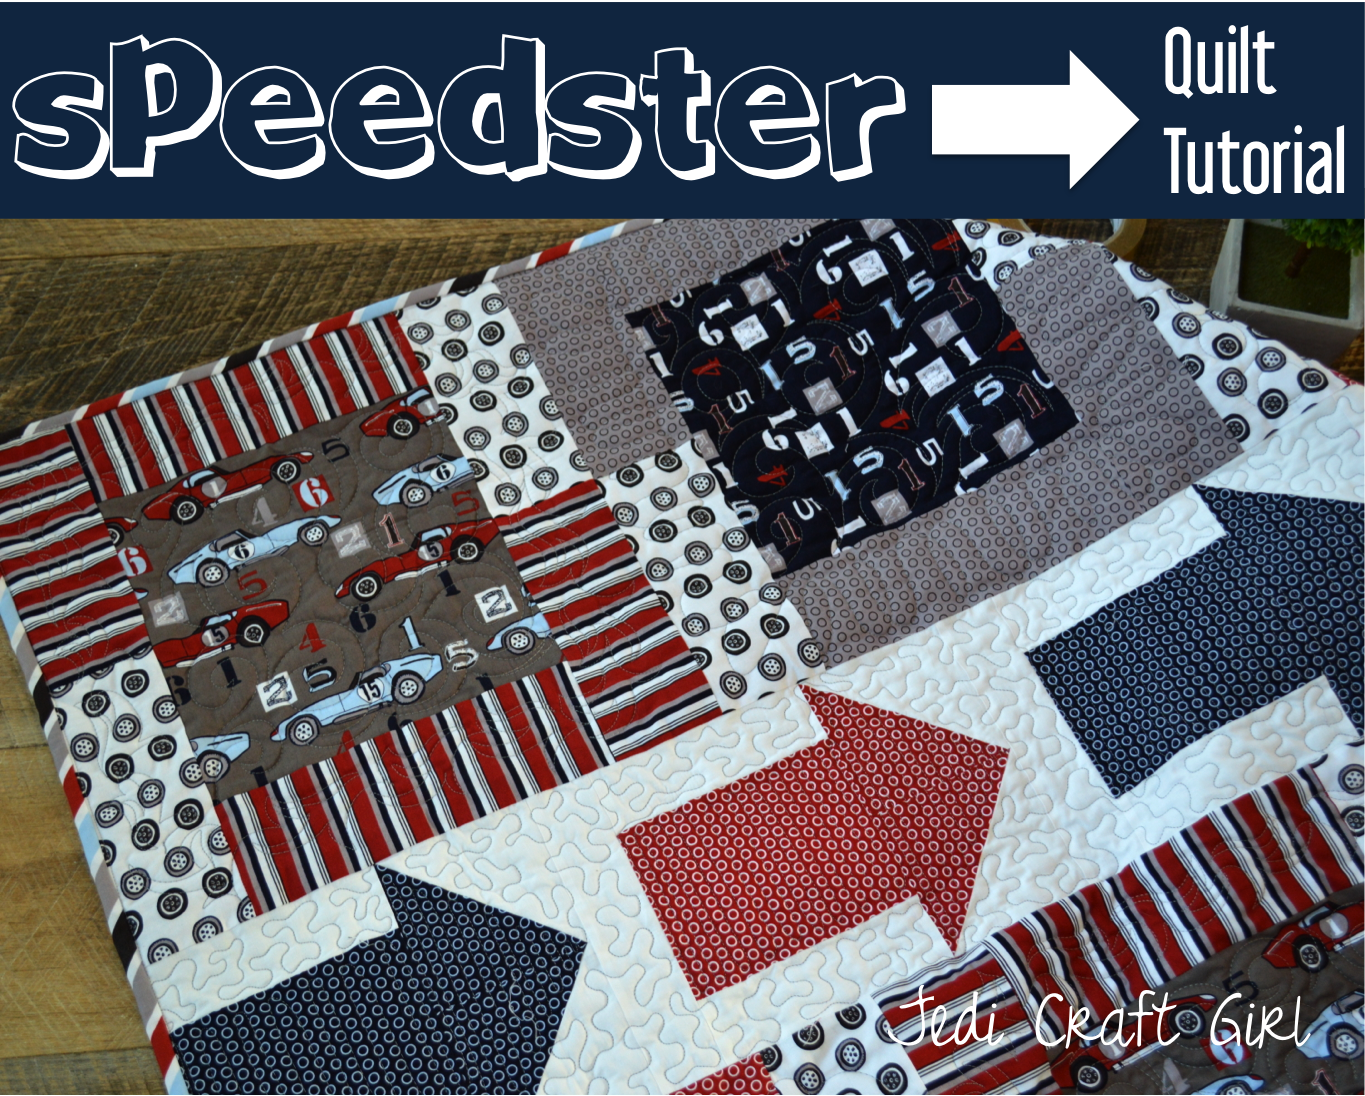 speedster-quilt-tutorial